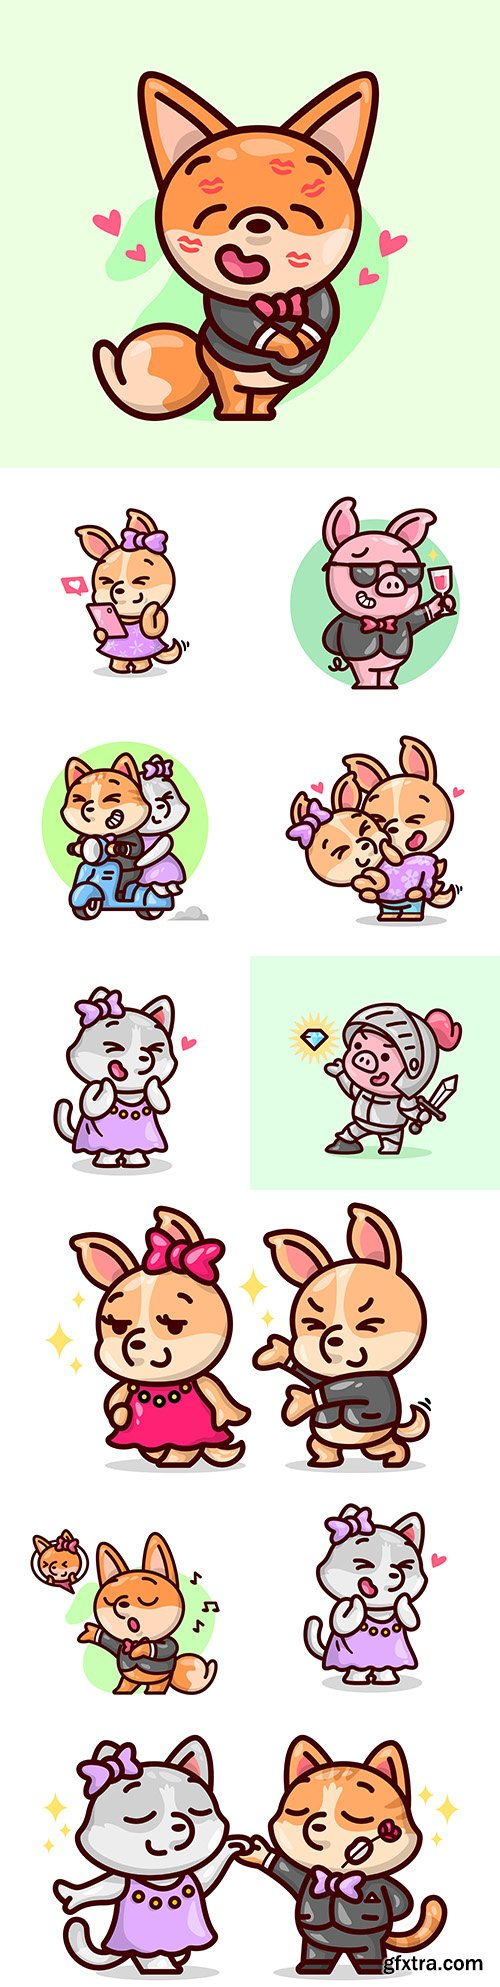 Cute animals in fashionable outfit painted design